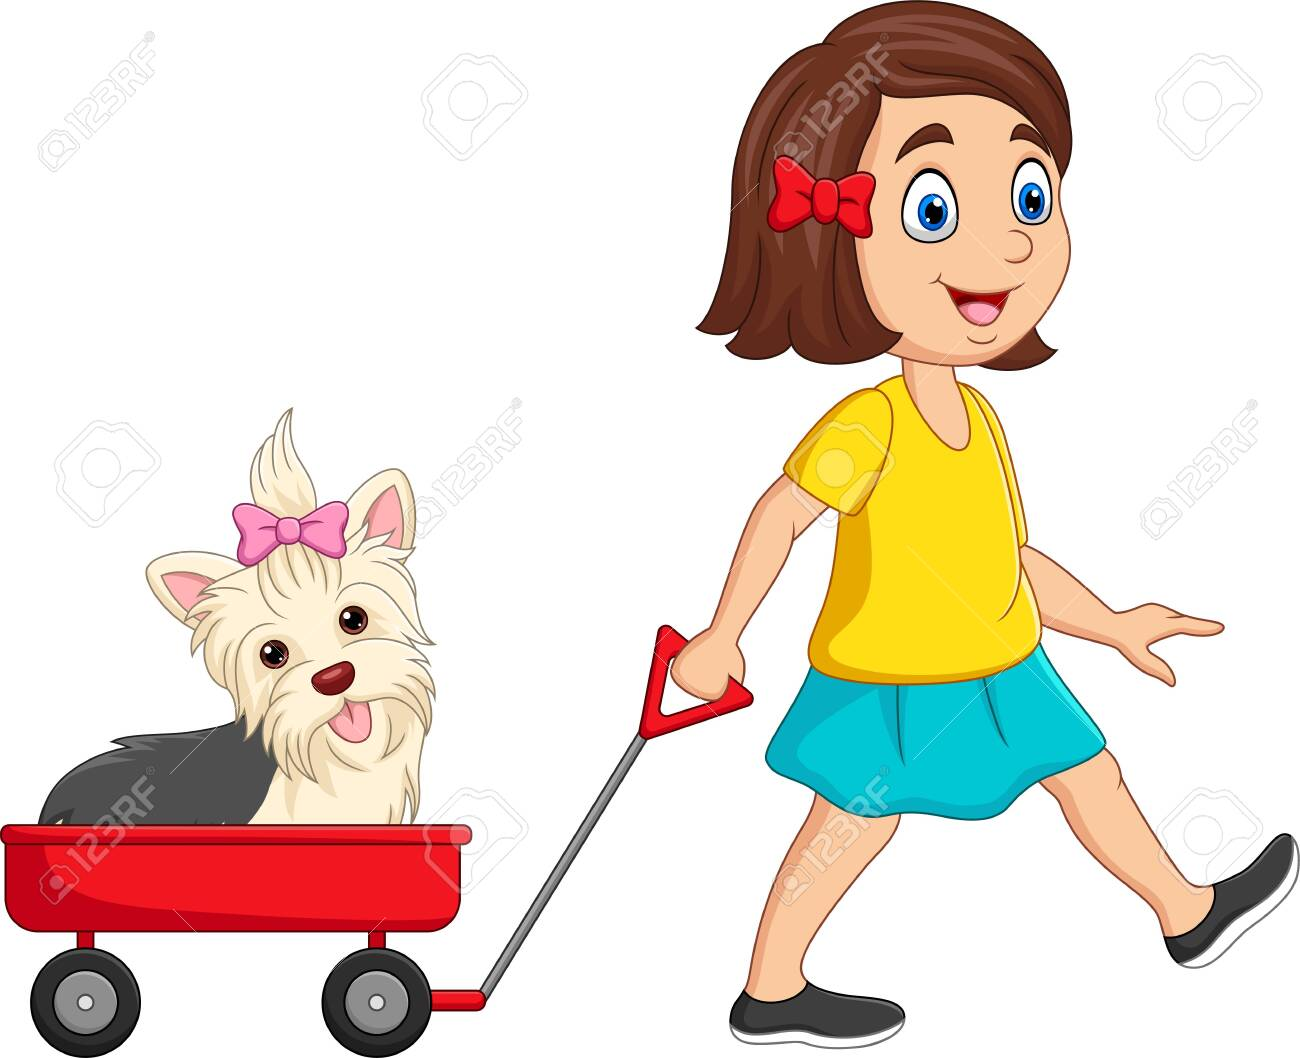 Vector illustration of Cartoon little girl pulling wagon with puppy - 147597362